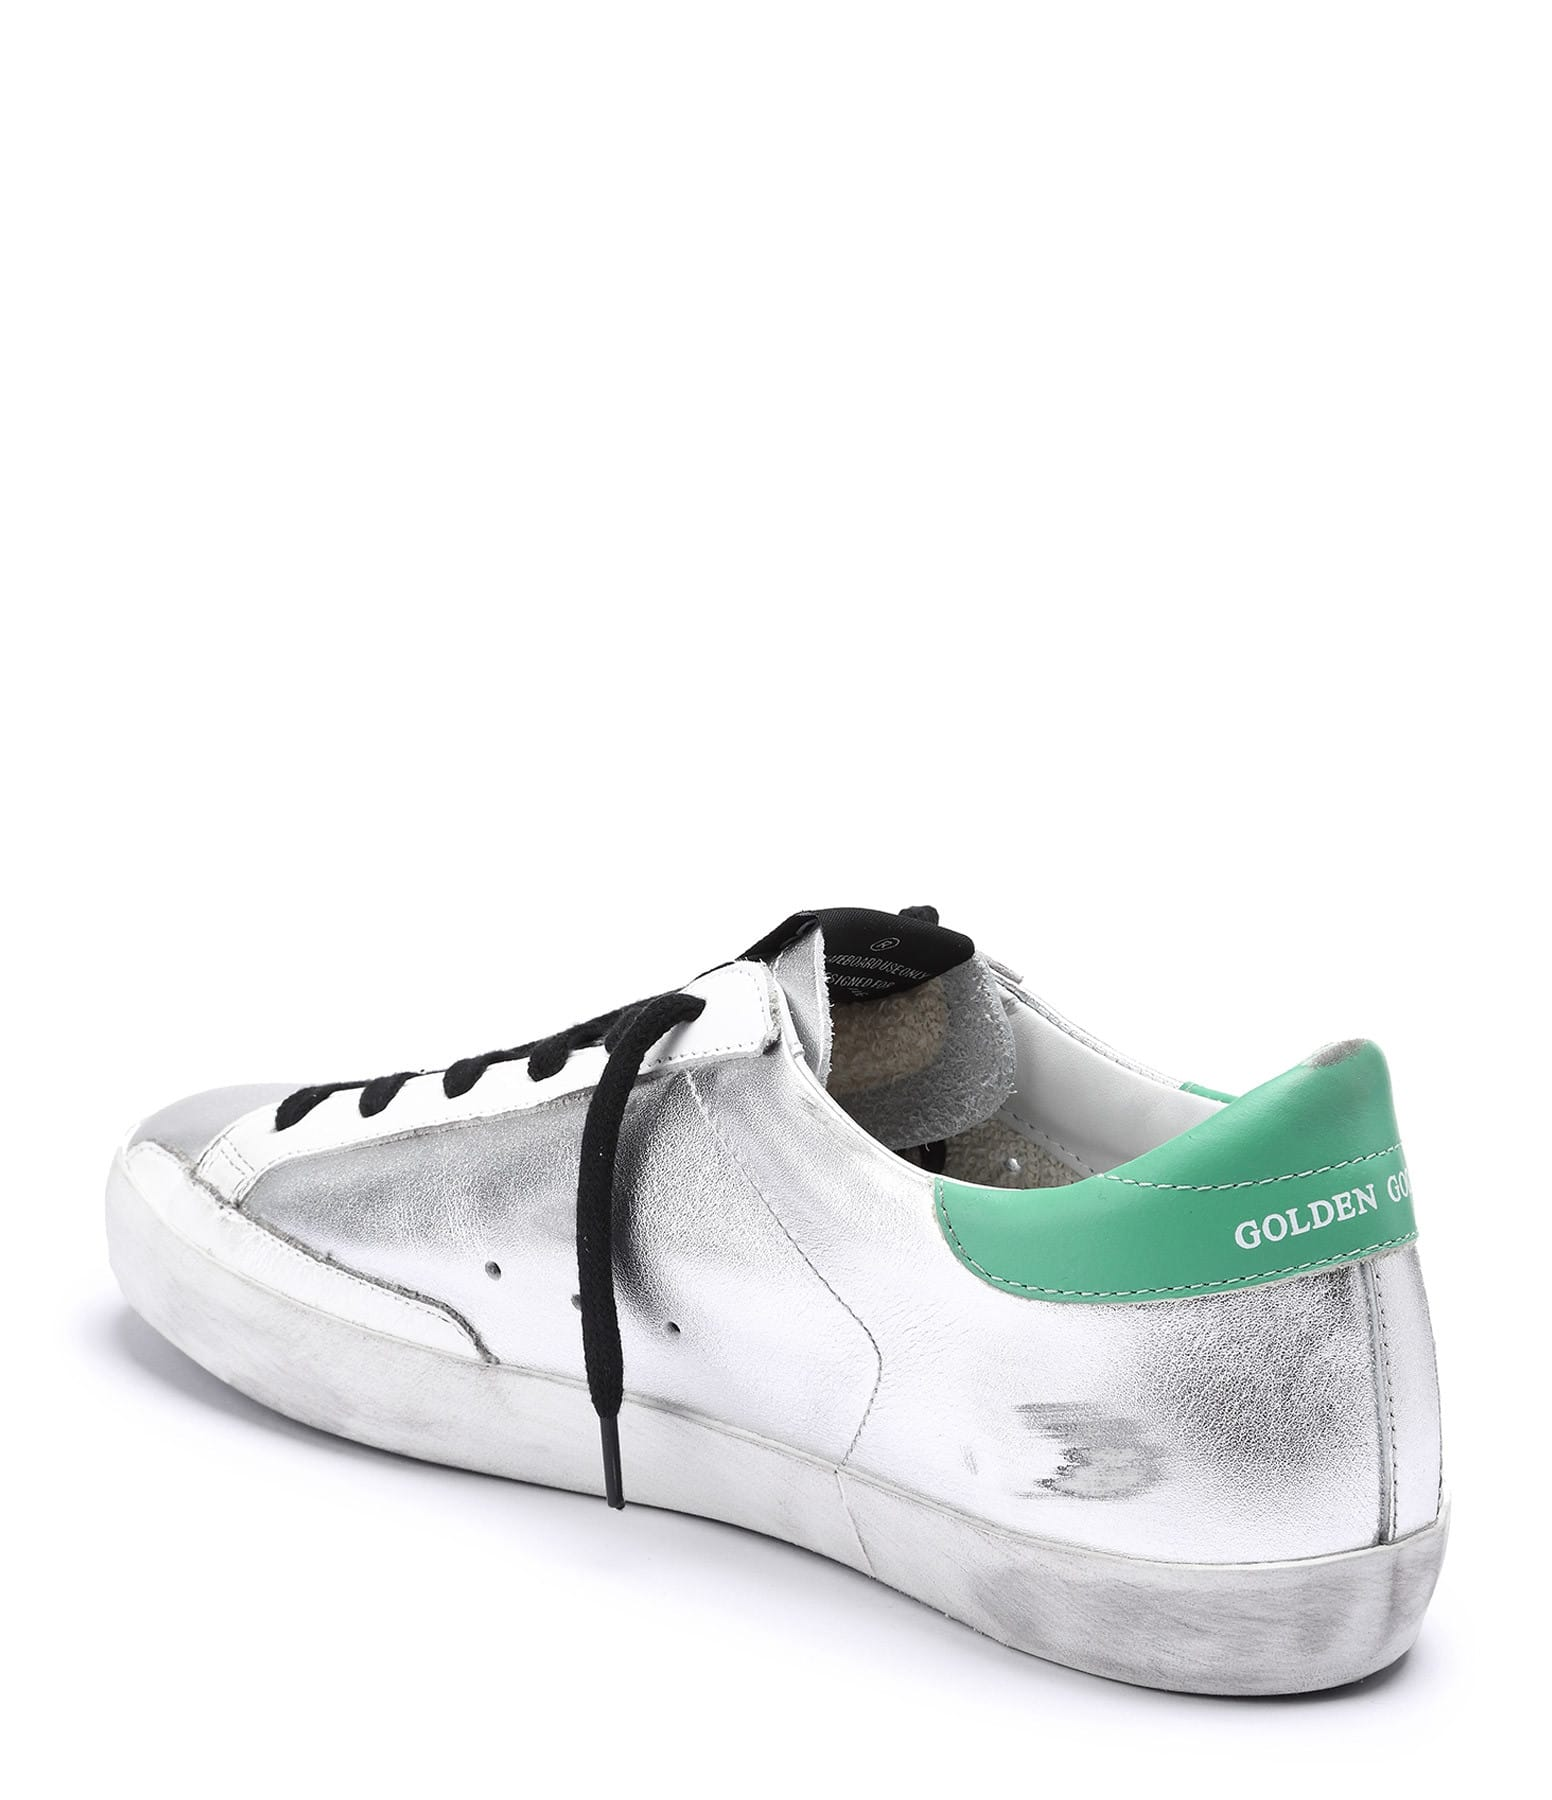 GOLDEN GOOSE - Baskets Superstar Cuir Argenté Vert Rouge